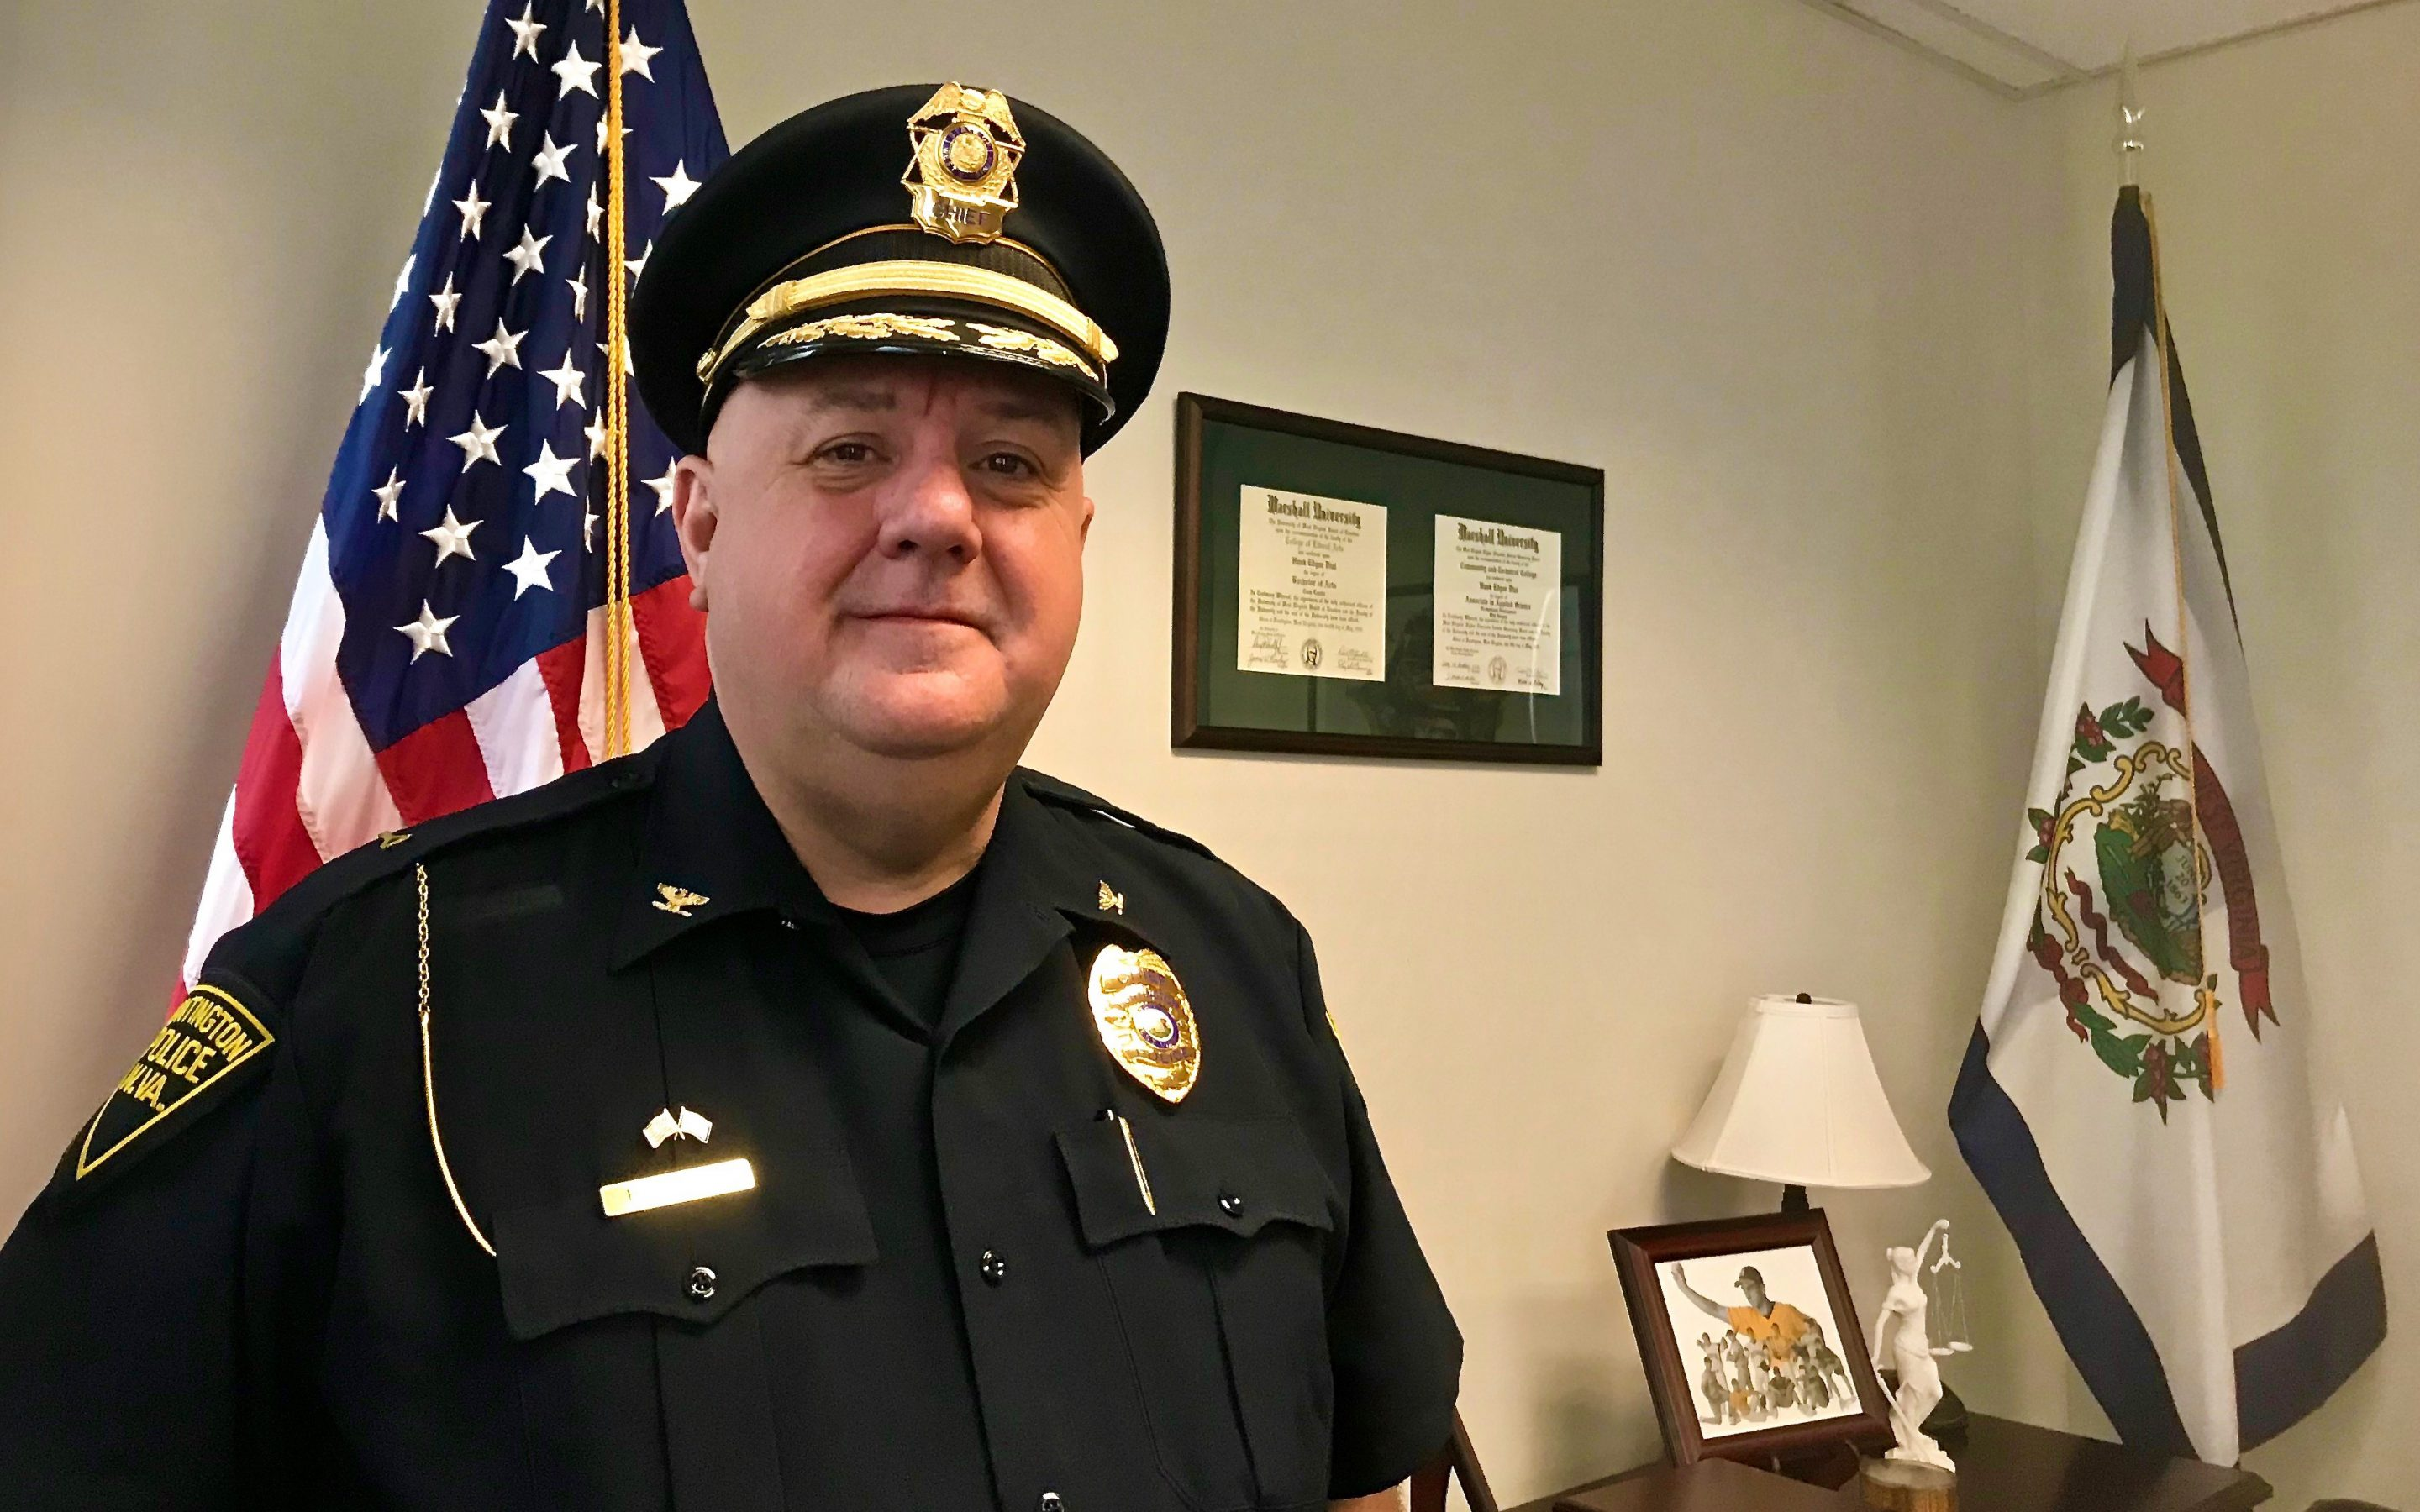 Huntington Boy Makes Good To Become Police Chief